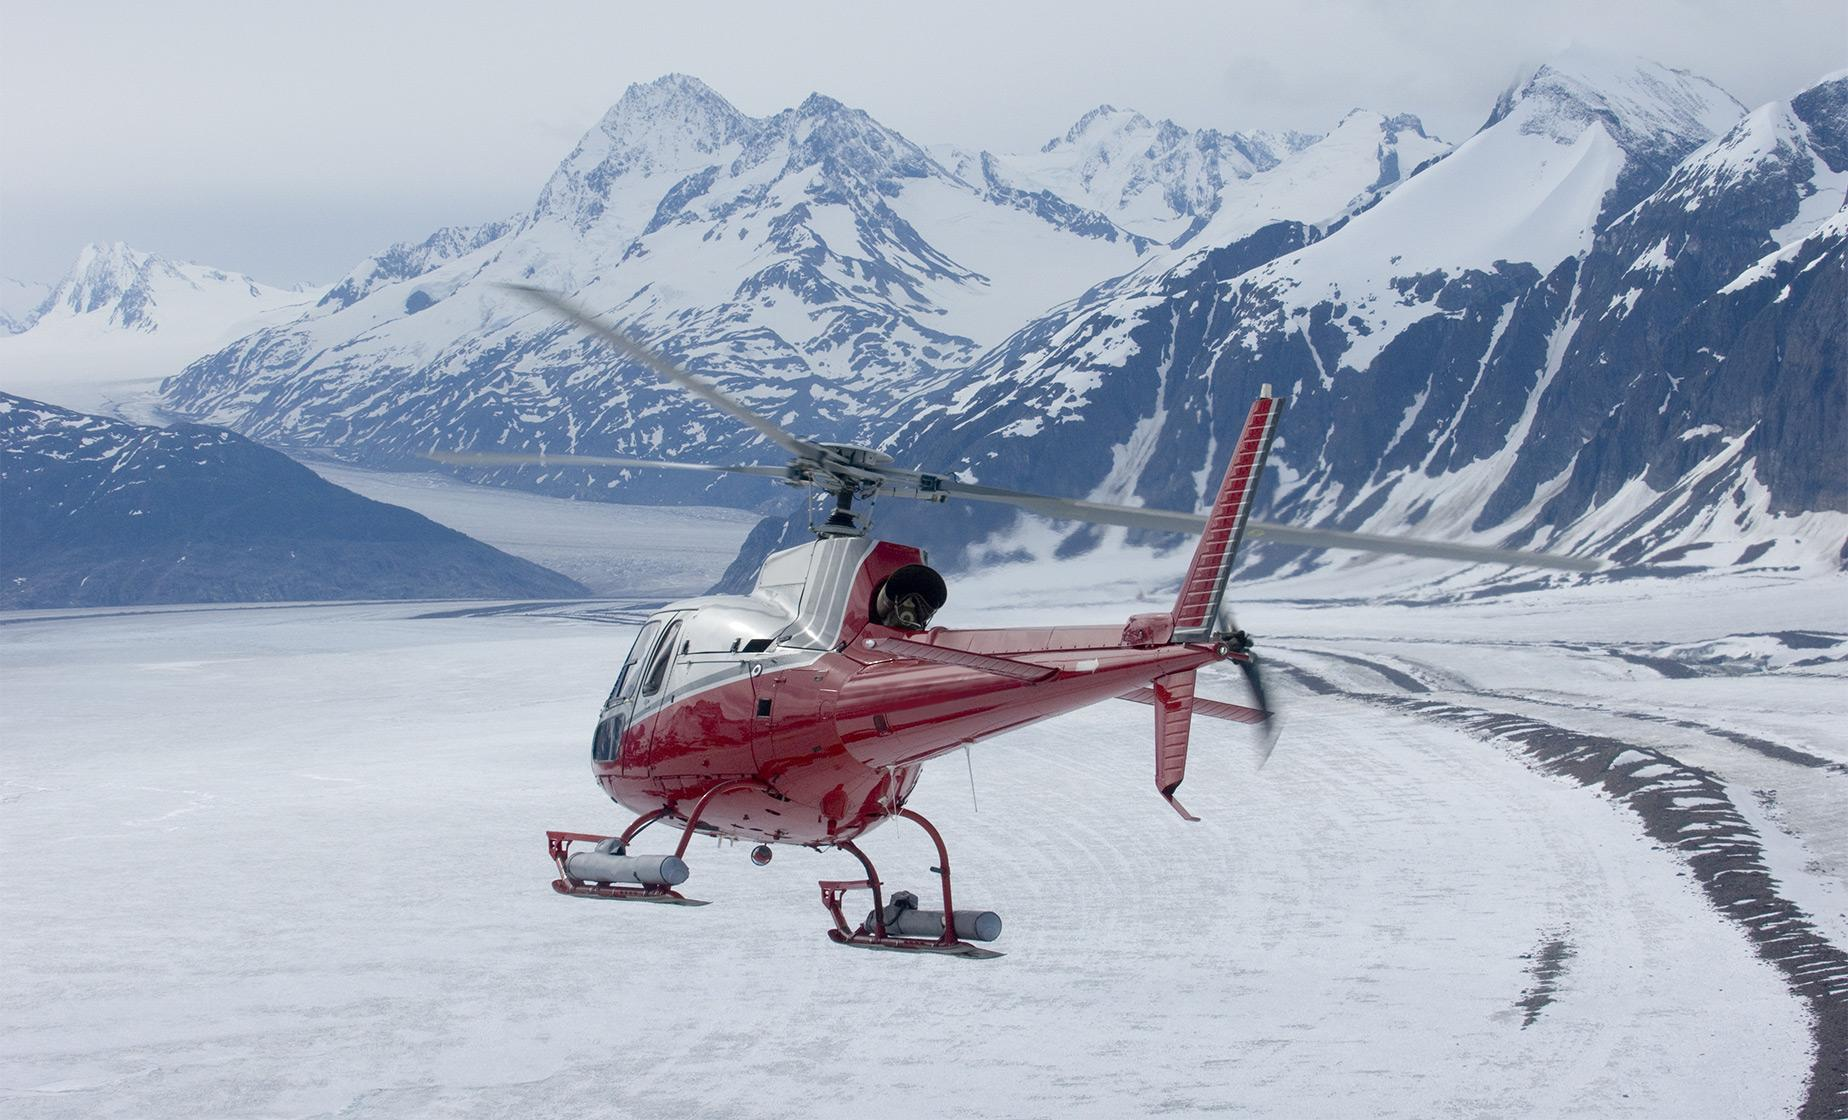 Taku Glacier Adventure by Air, Water, and Ice